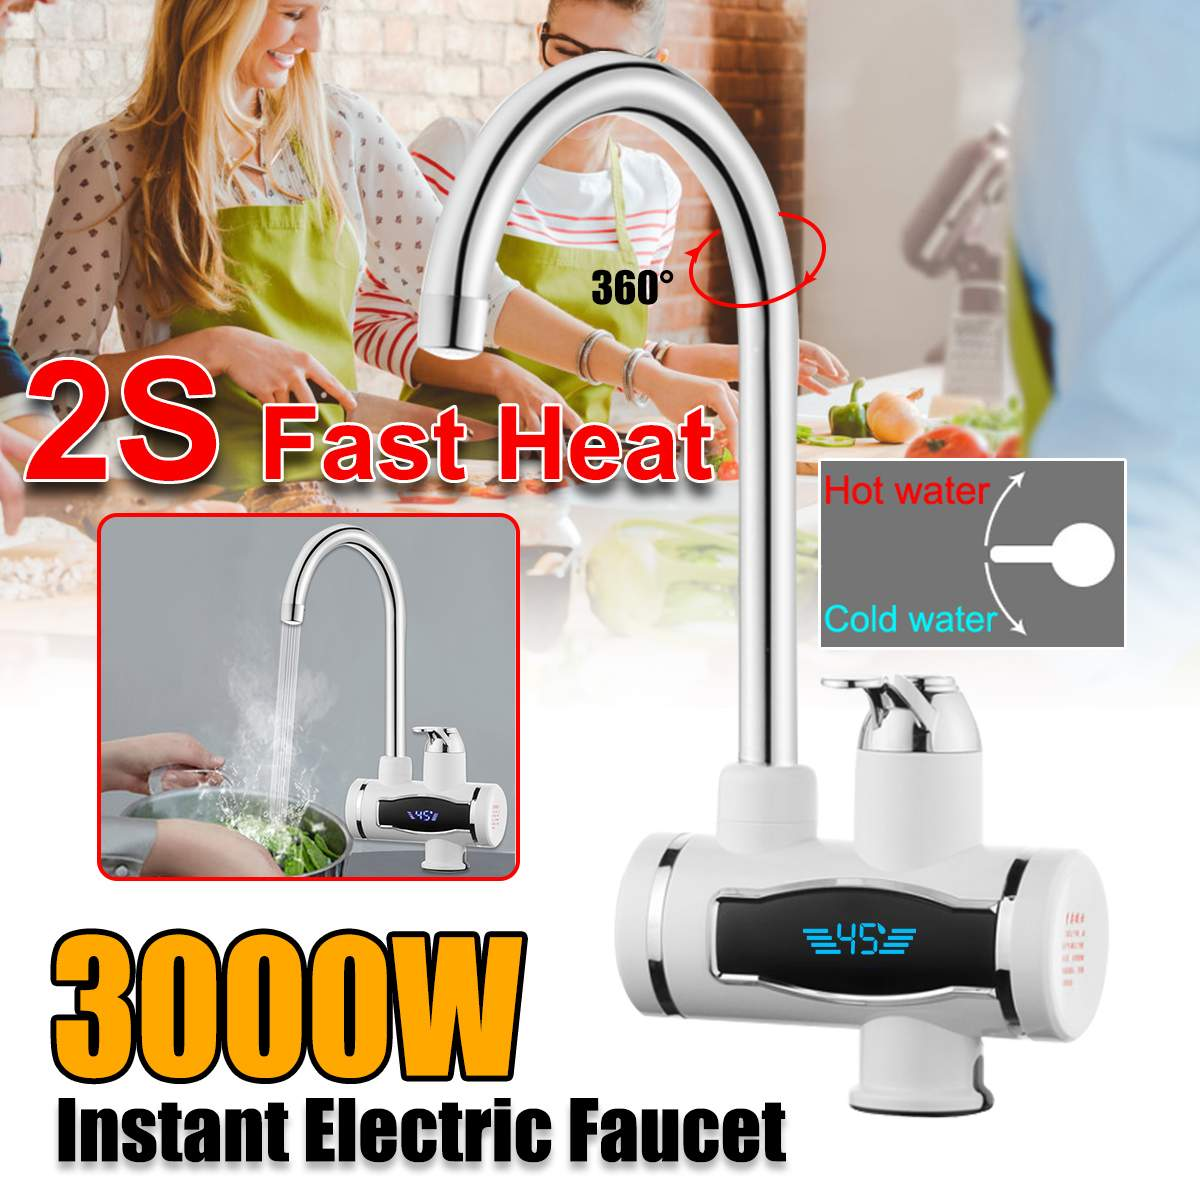 3000W Instant Tankless Electric Hot Water Heater-Faucet Kitchen Instant Heating Tap Water-Heater Under Inflow With LED EU/US Plu